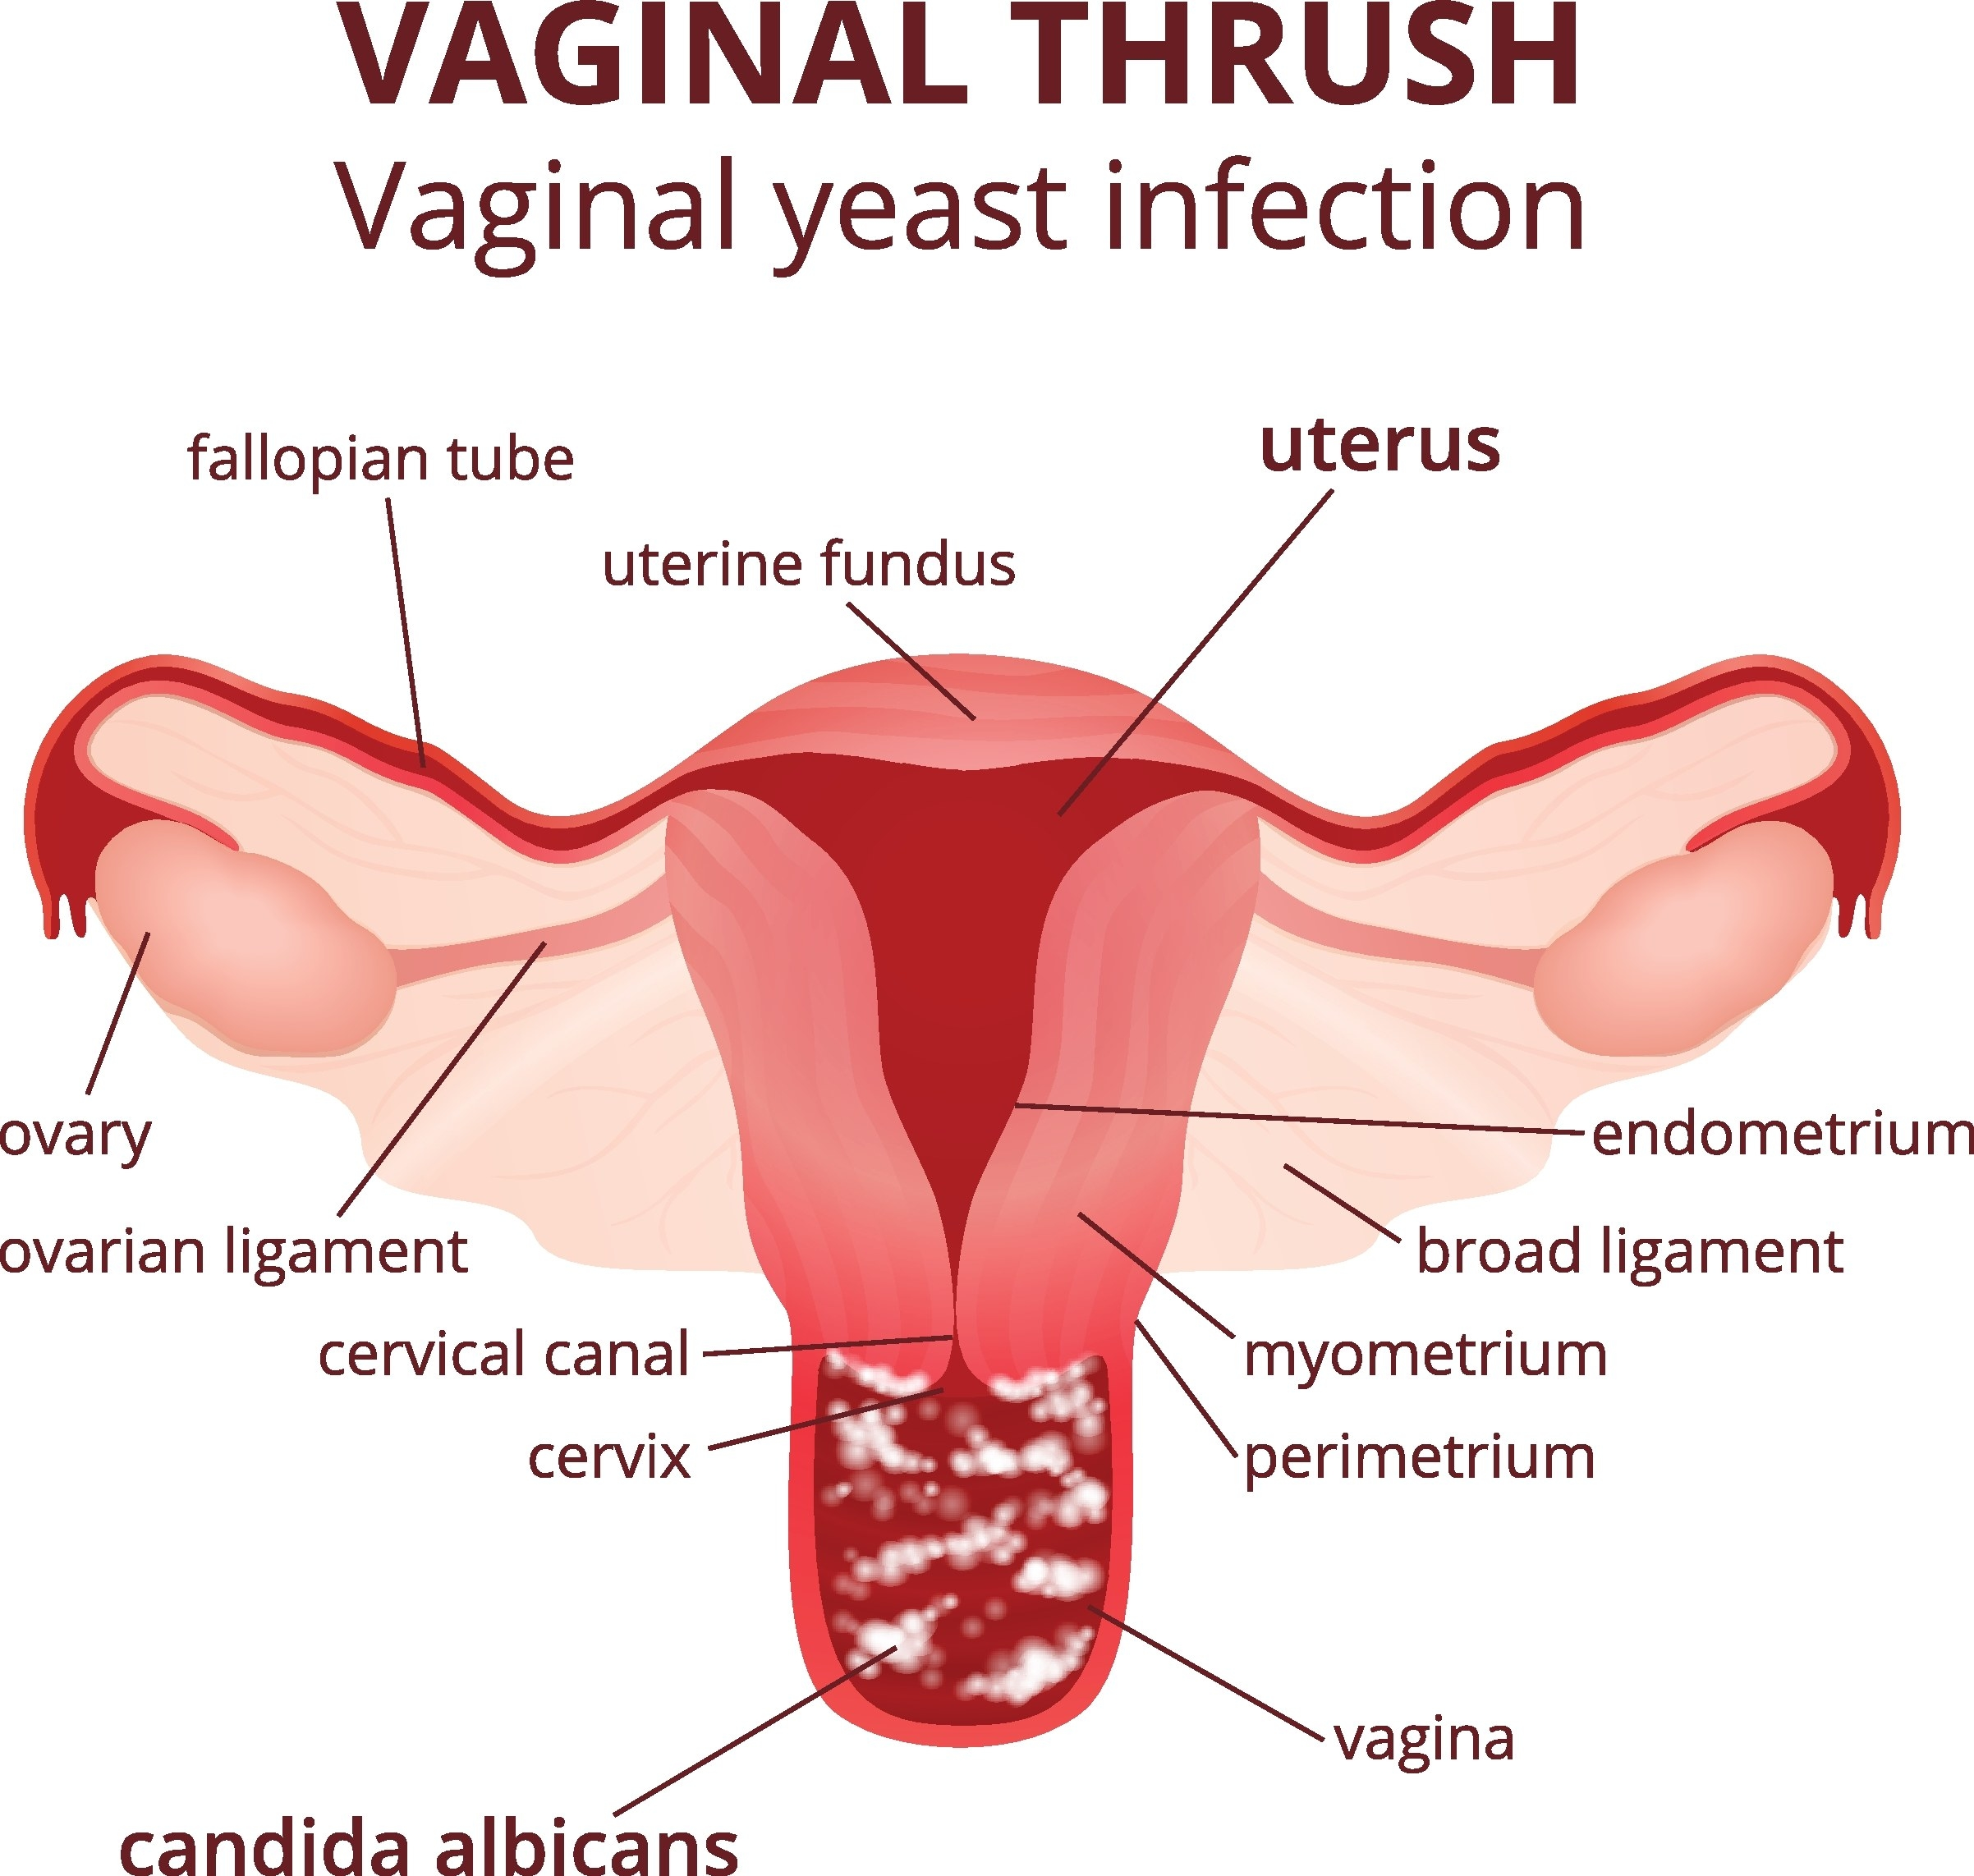 A stock image of a chart with the uterus